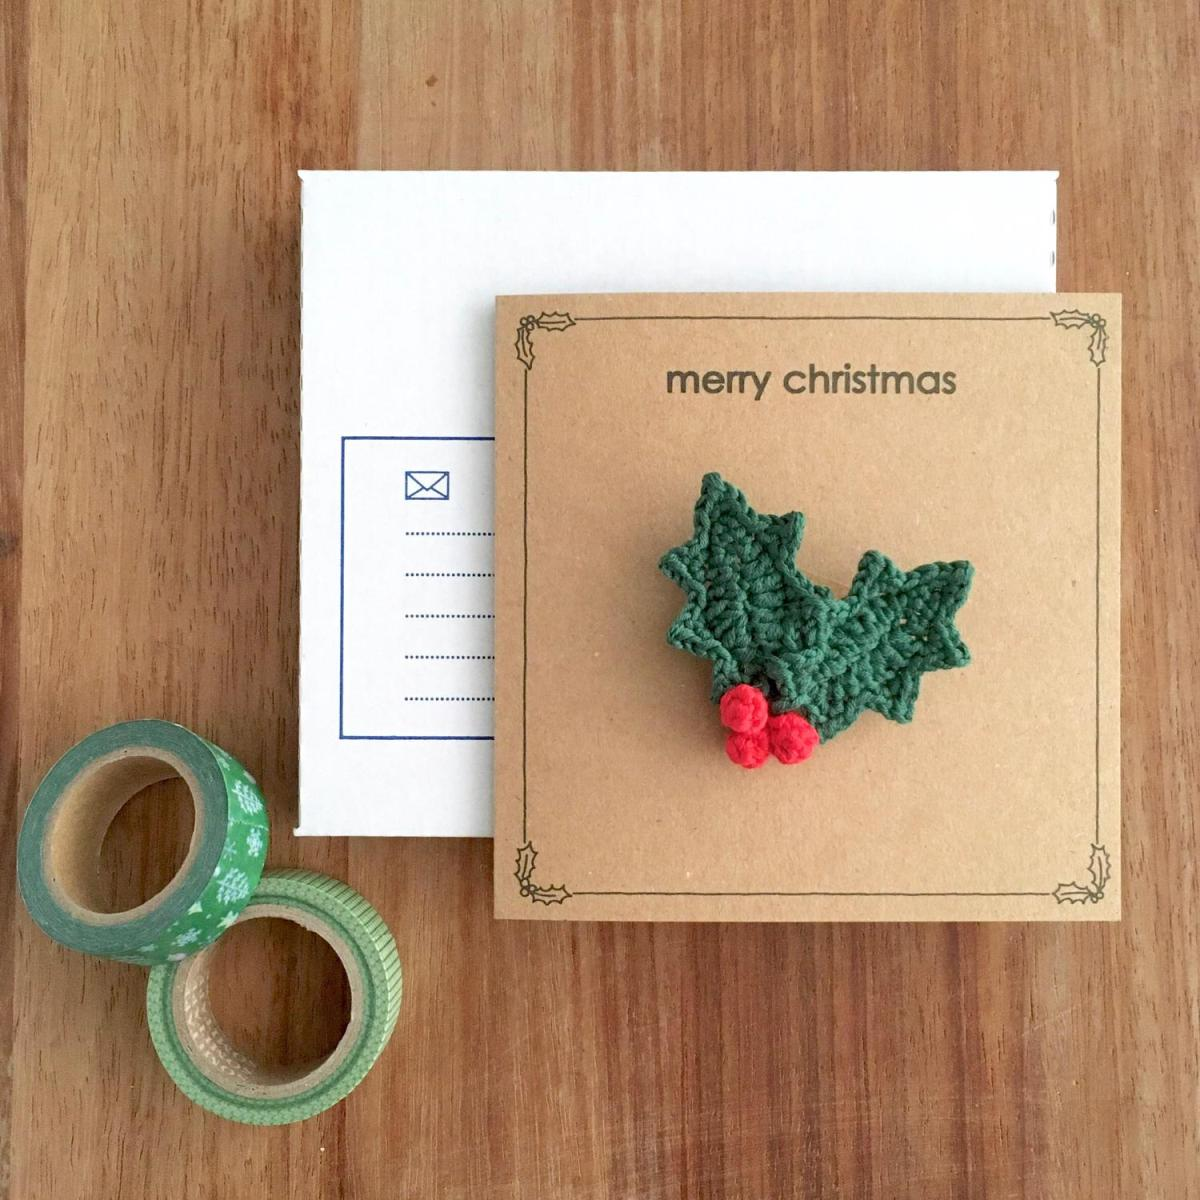 Kraft greetings card with holly sprig brooch and merry christmas message